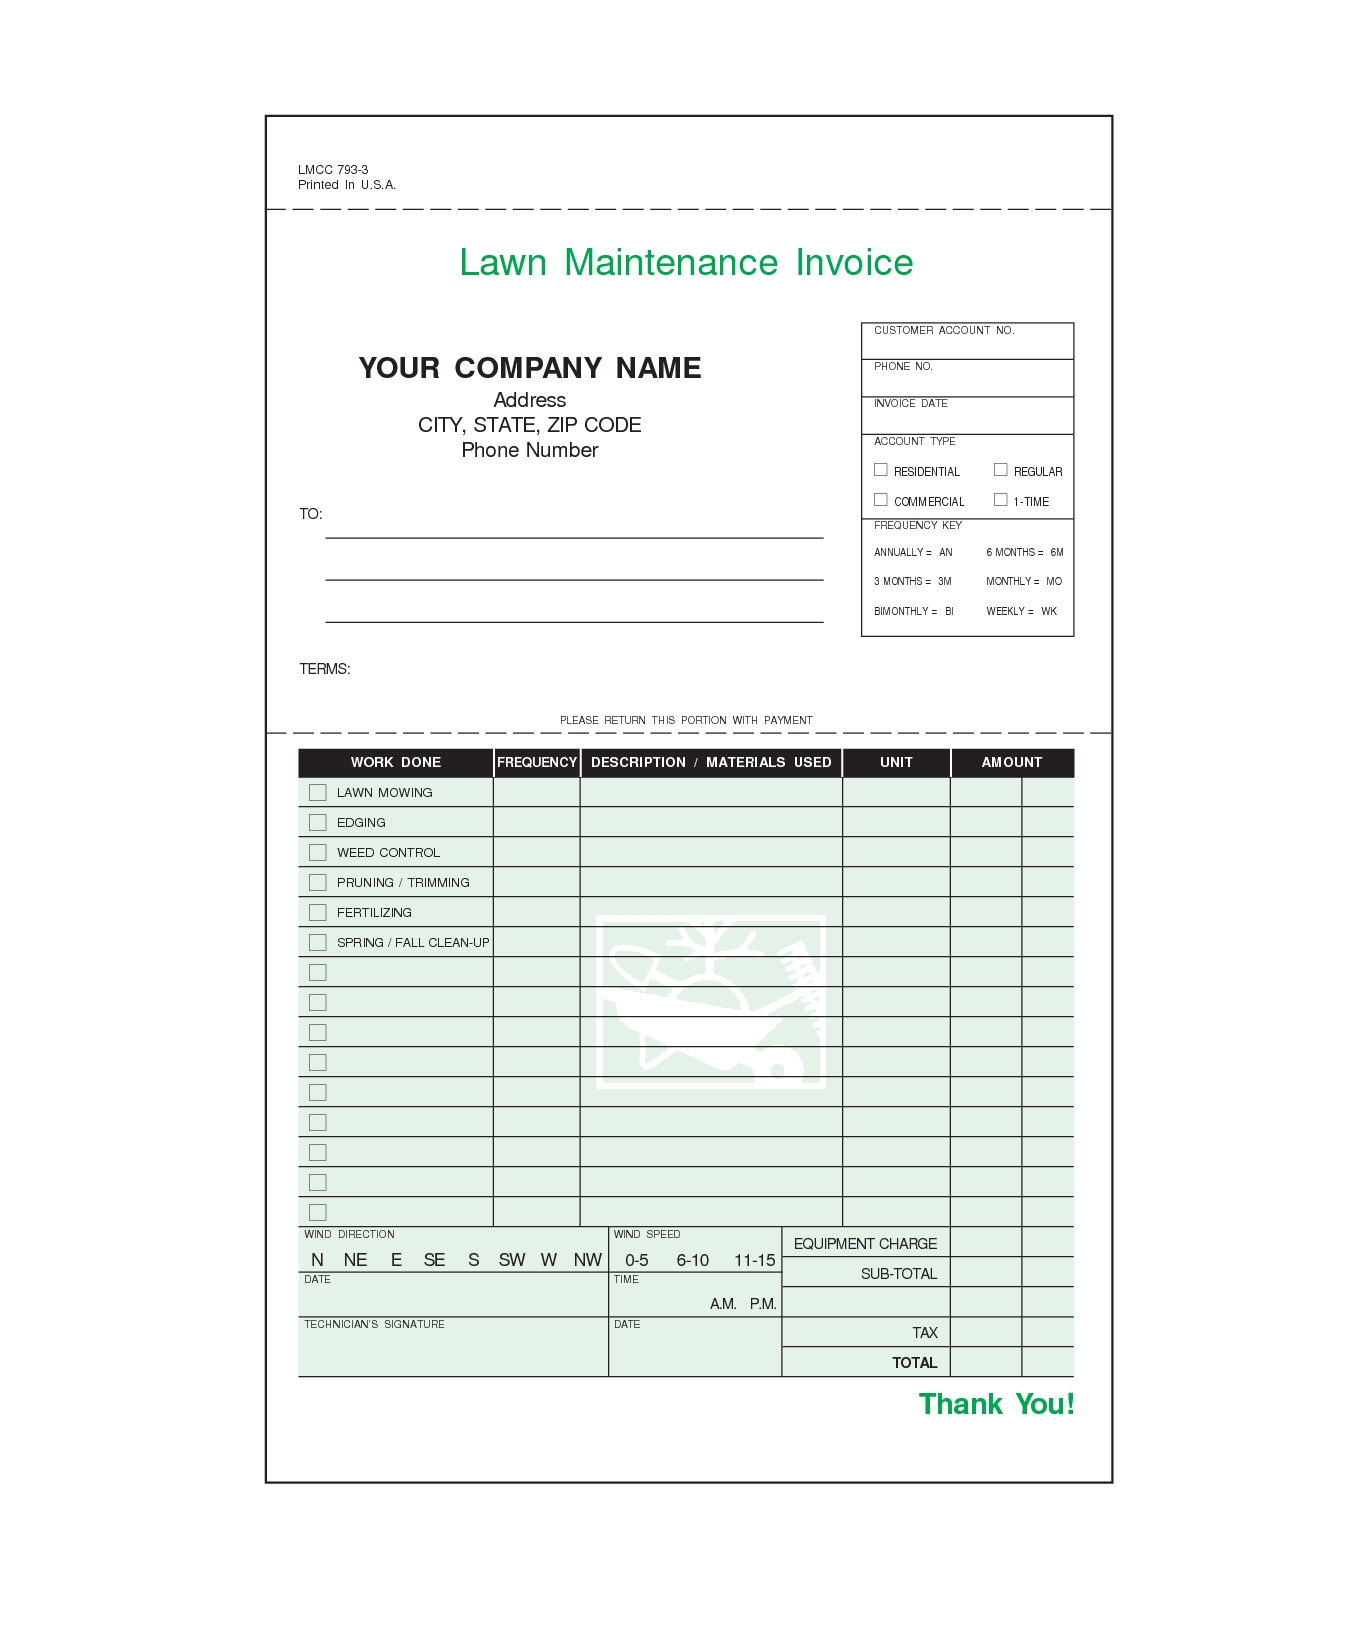 Lawn Care Invoice Template Lawn Care Invoice Template For Excel - Lawn service invoice template free